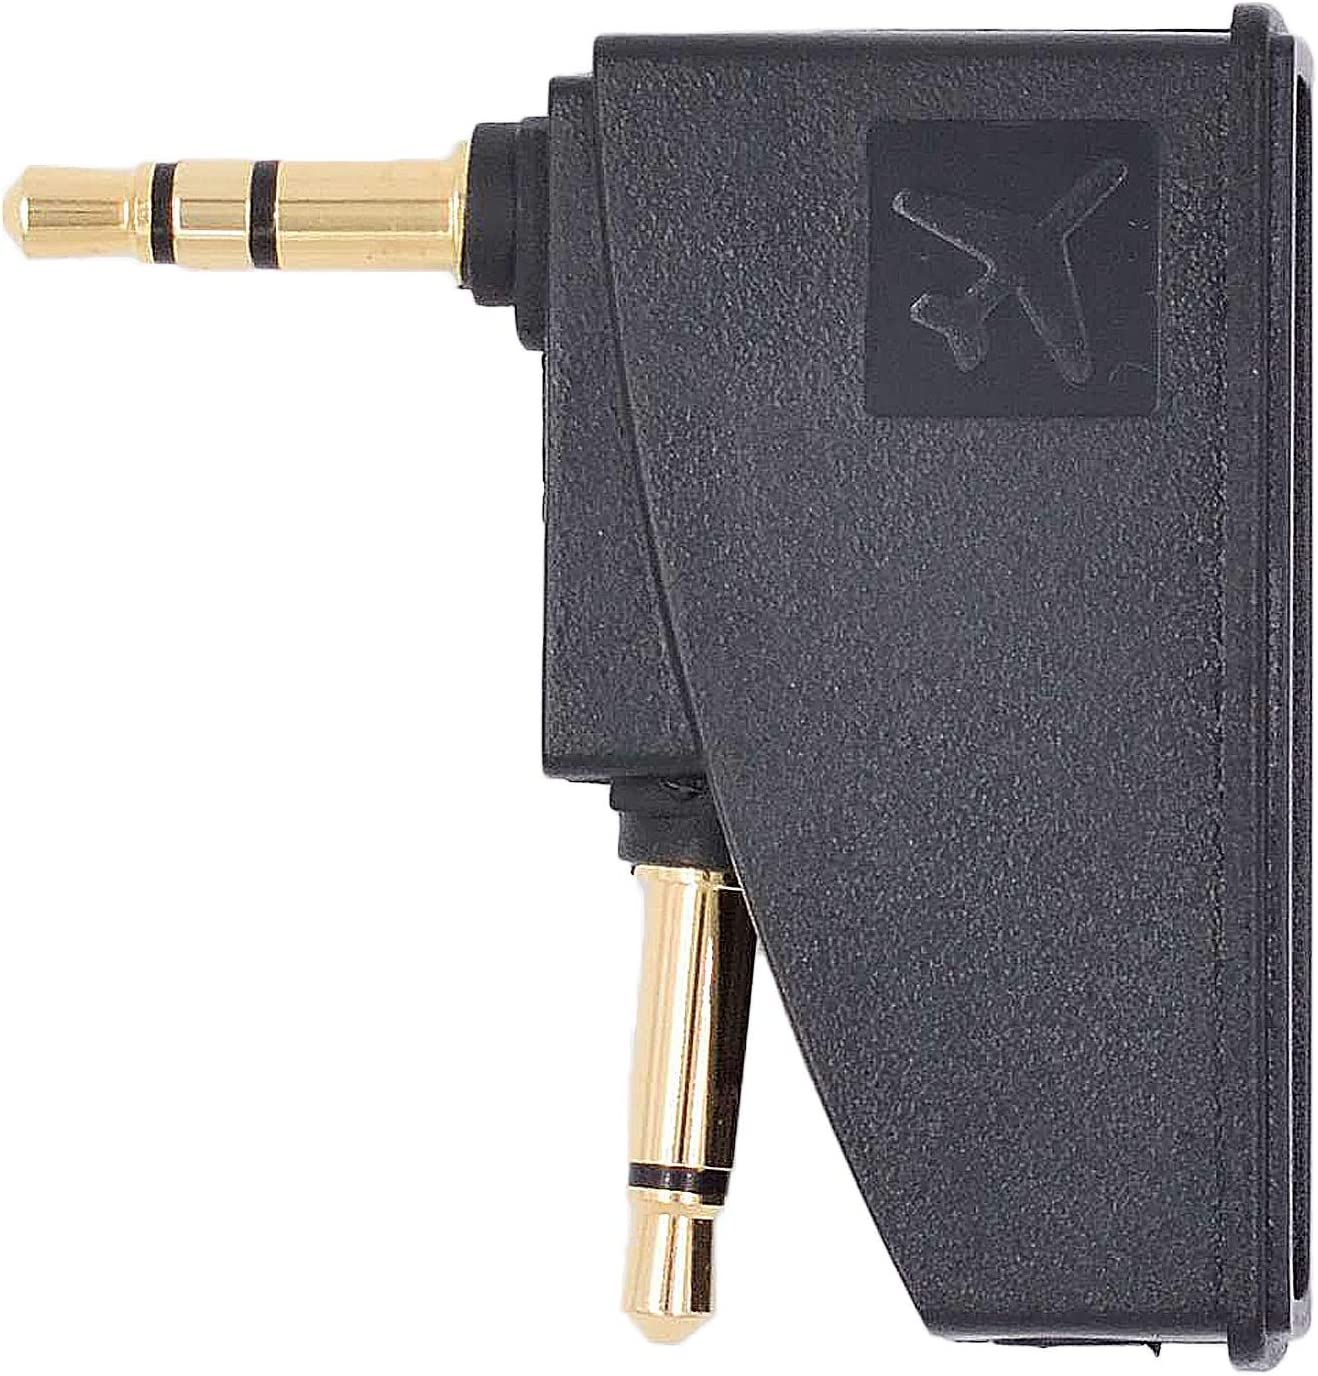 Valefod Airplane Headphone Adapter for Bose QuietComfort 2 QC3 QC15 QC25 QC35 SoundLink AE2 AE2W and More Headphones Golden Plated 3.5mm Jack